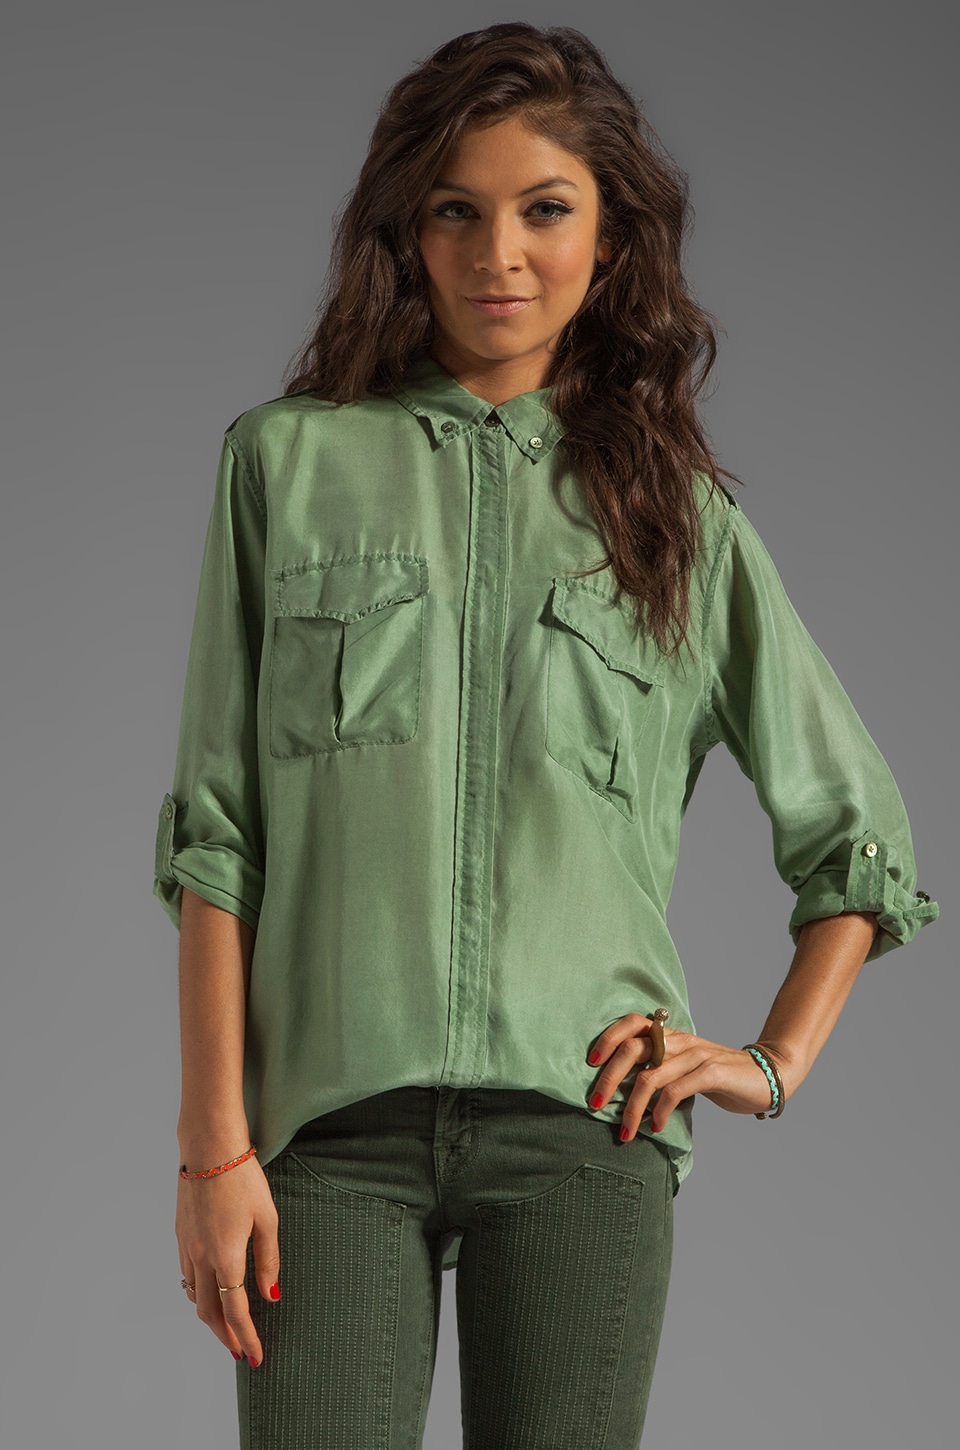 Equipment Major Blouse in Safari Green